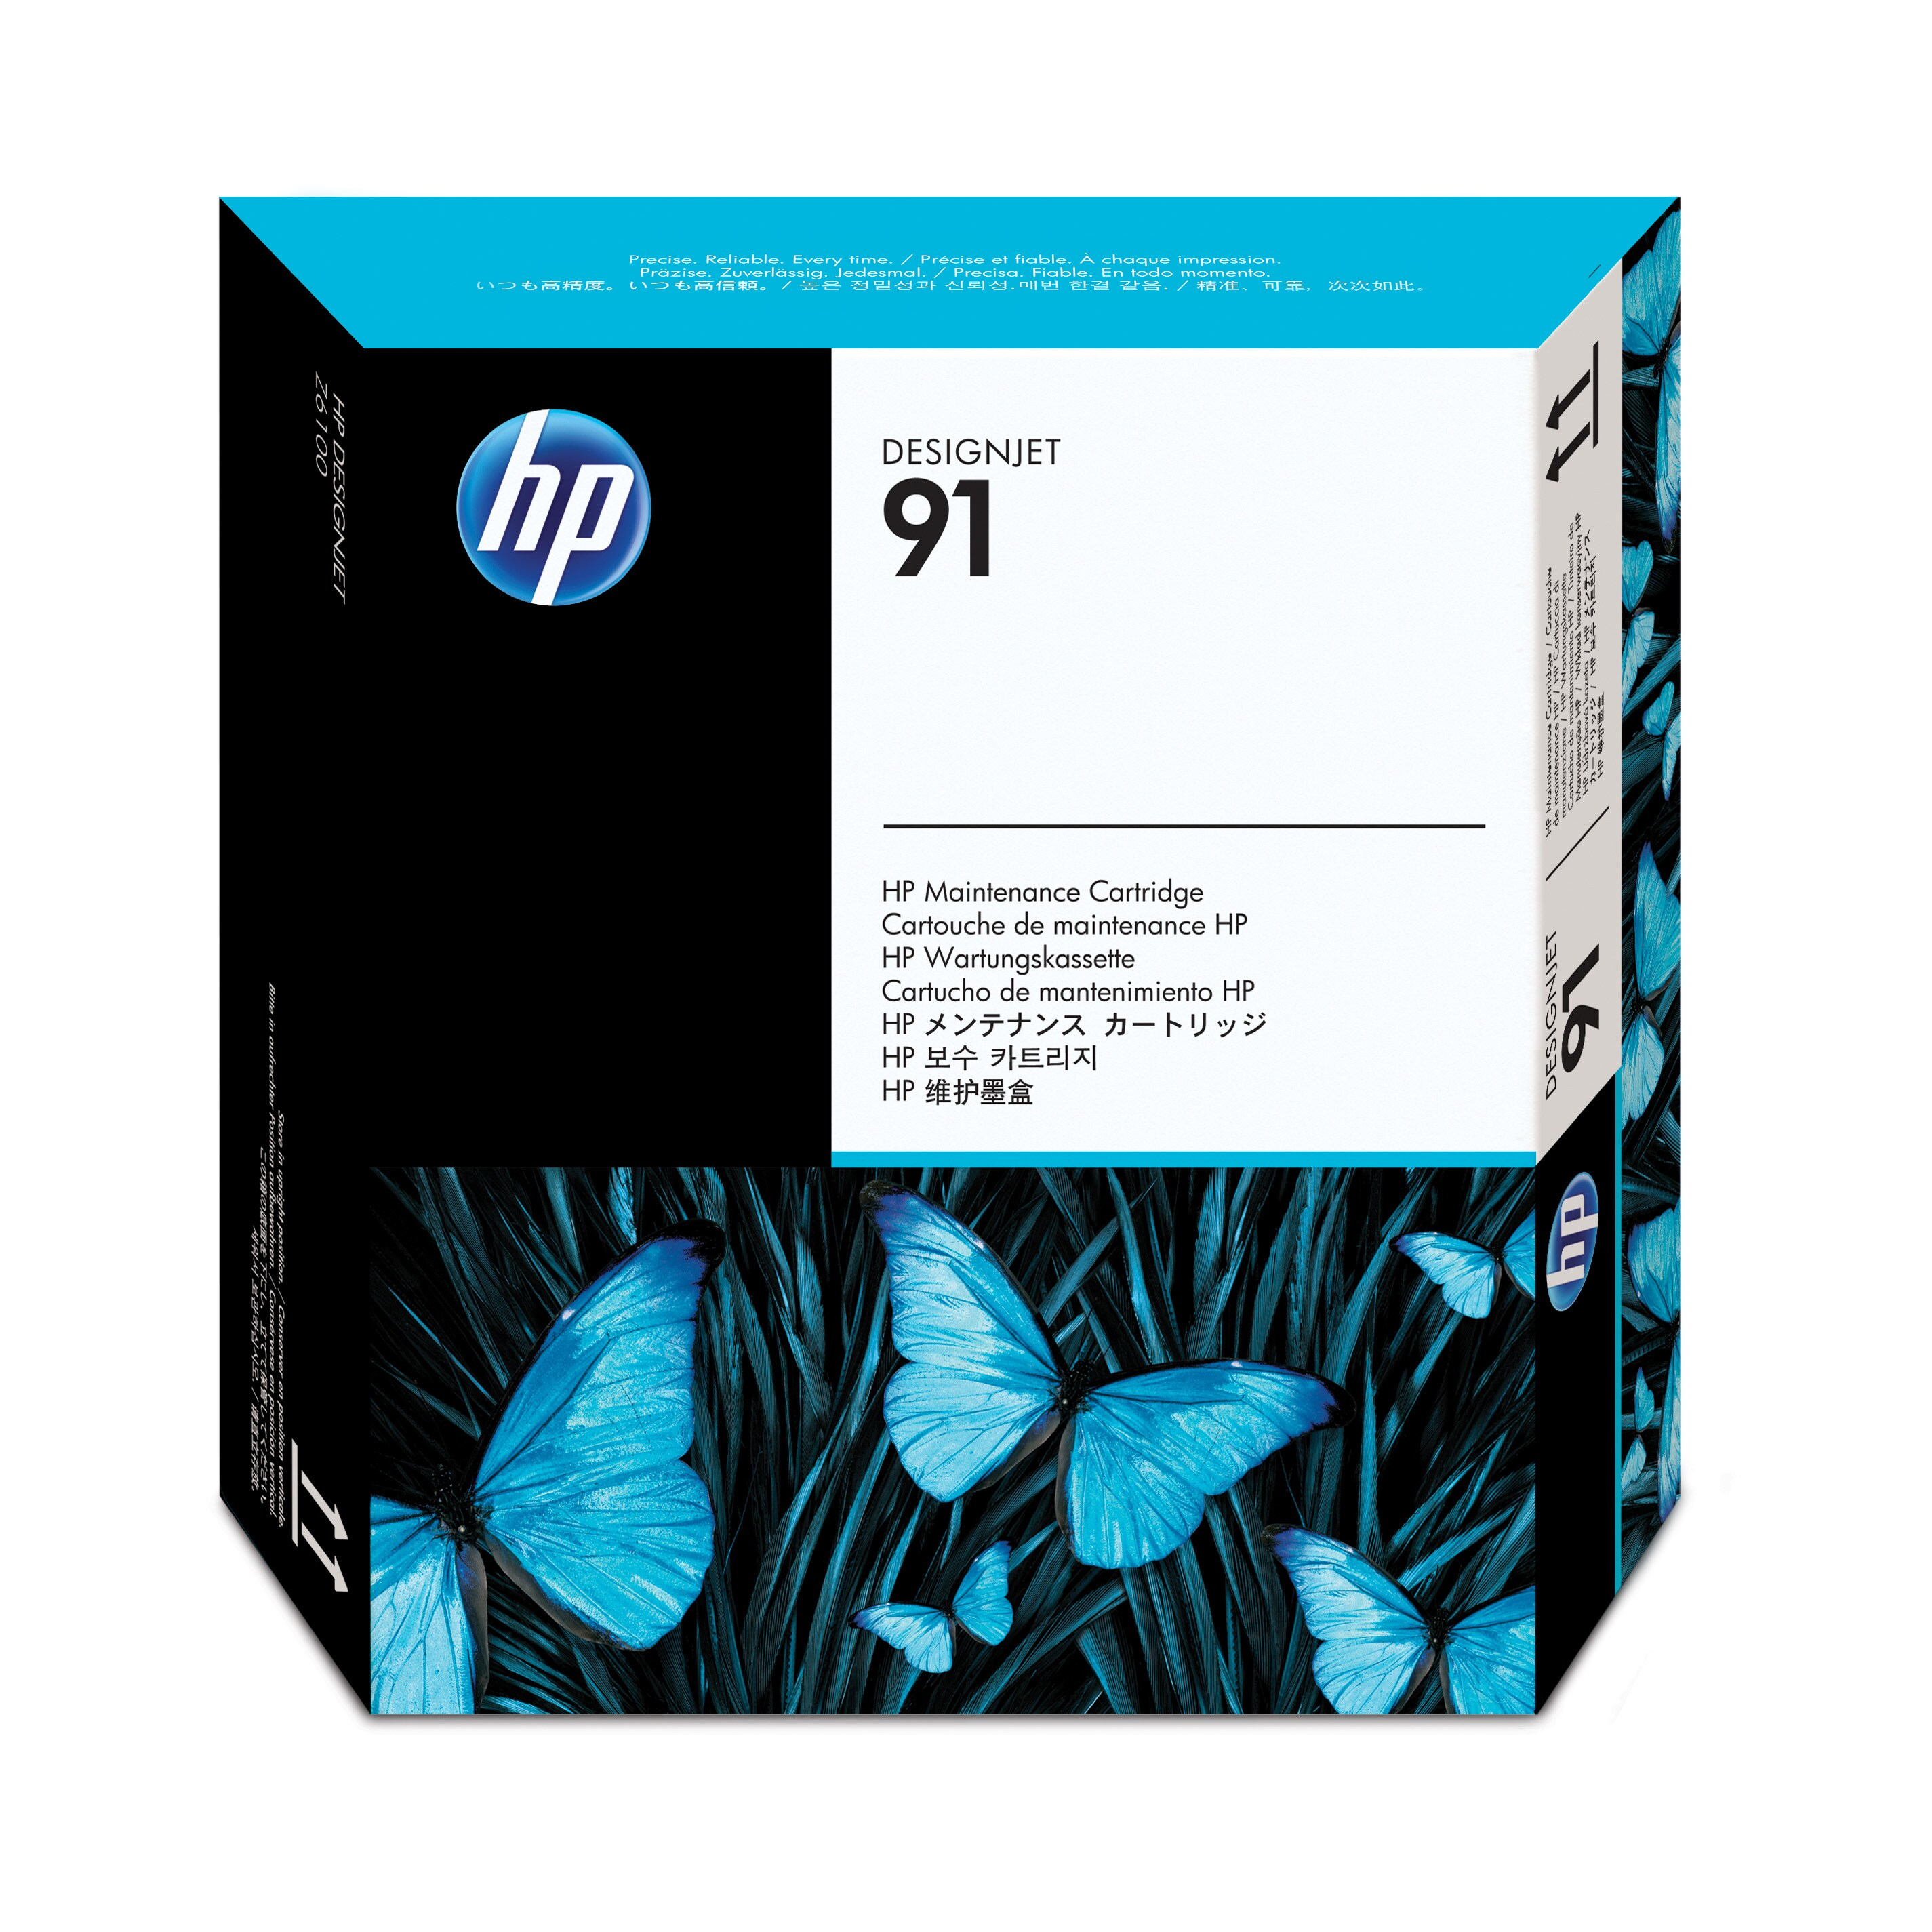 HP No. 91 Maintenance Cartridge C9518a